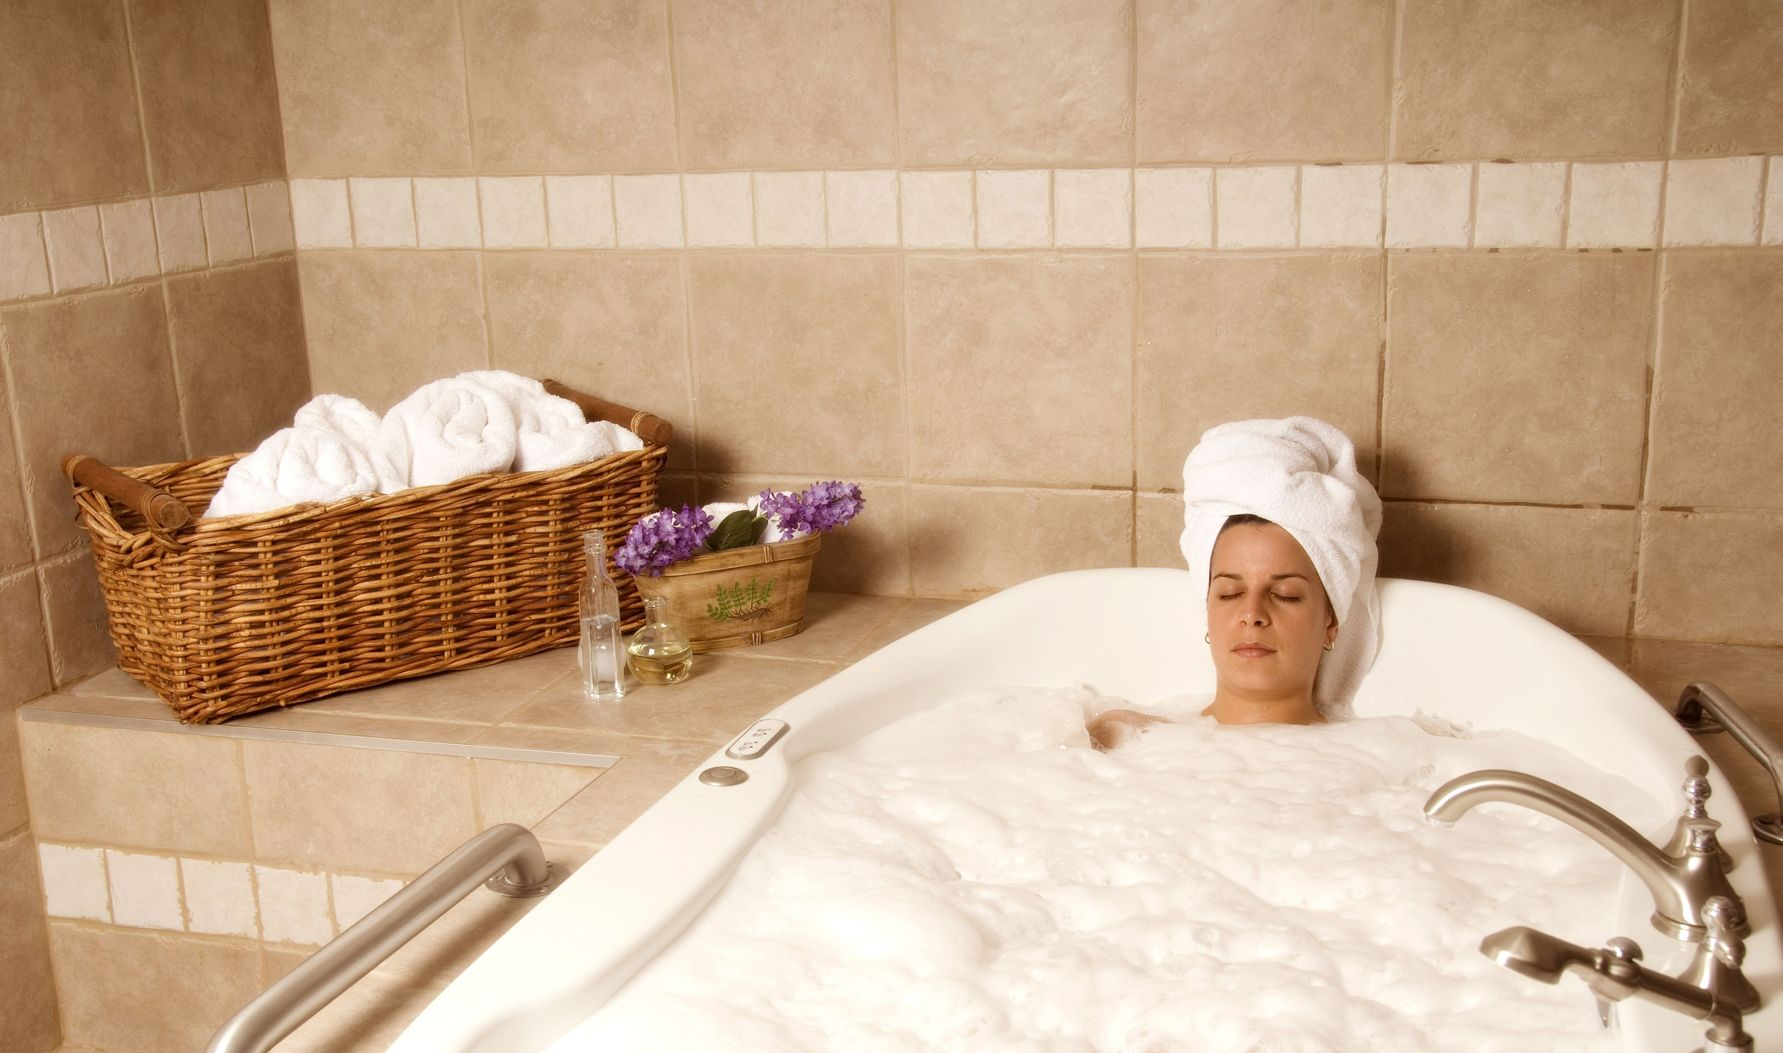 Taking a relaxing bath will help you recharge.